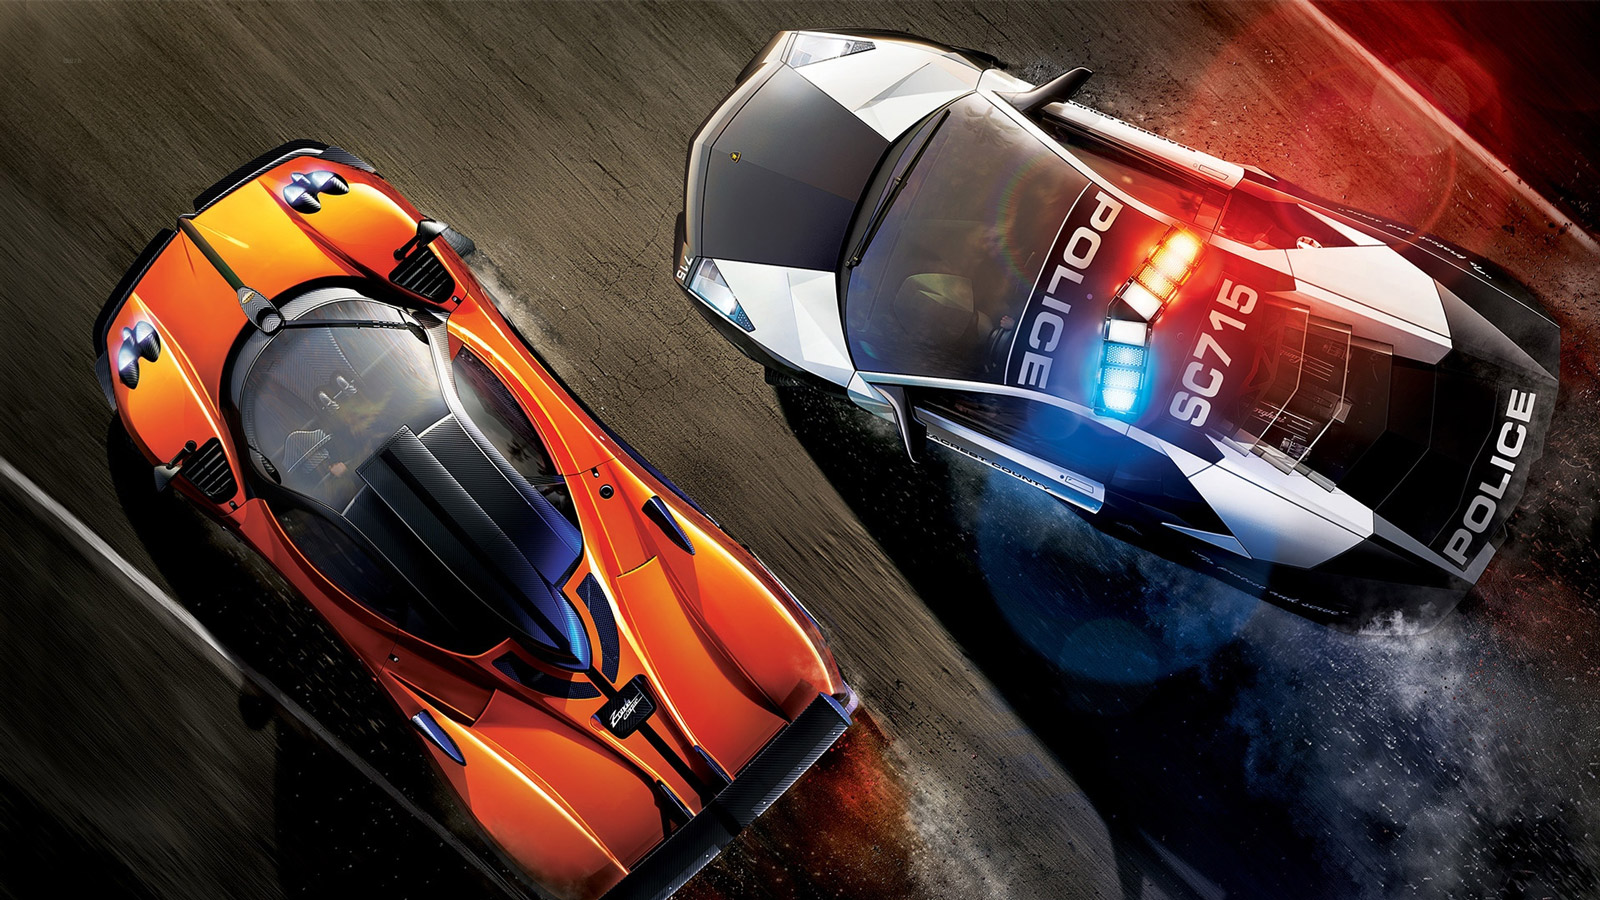 Need for Speed: Hot Pursuit Wallpaper in 1600x900